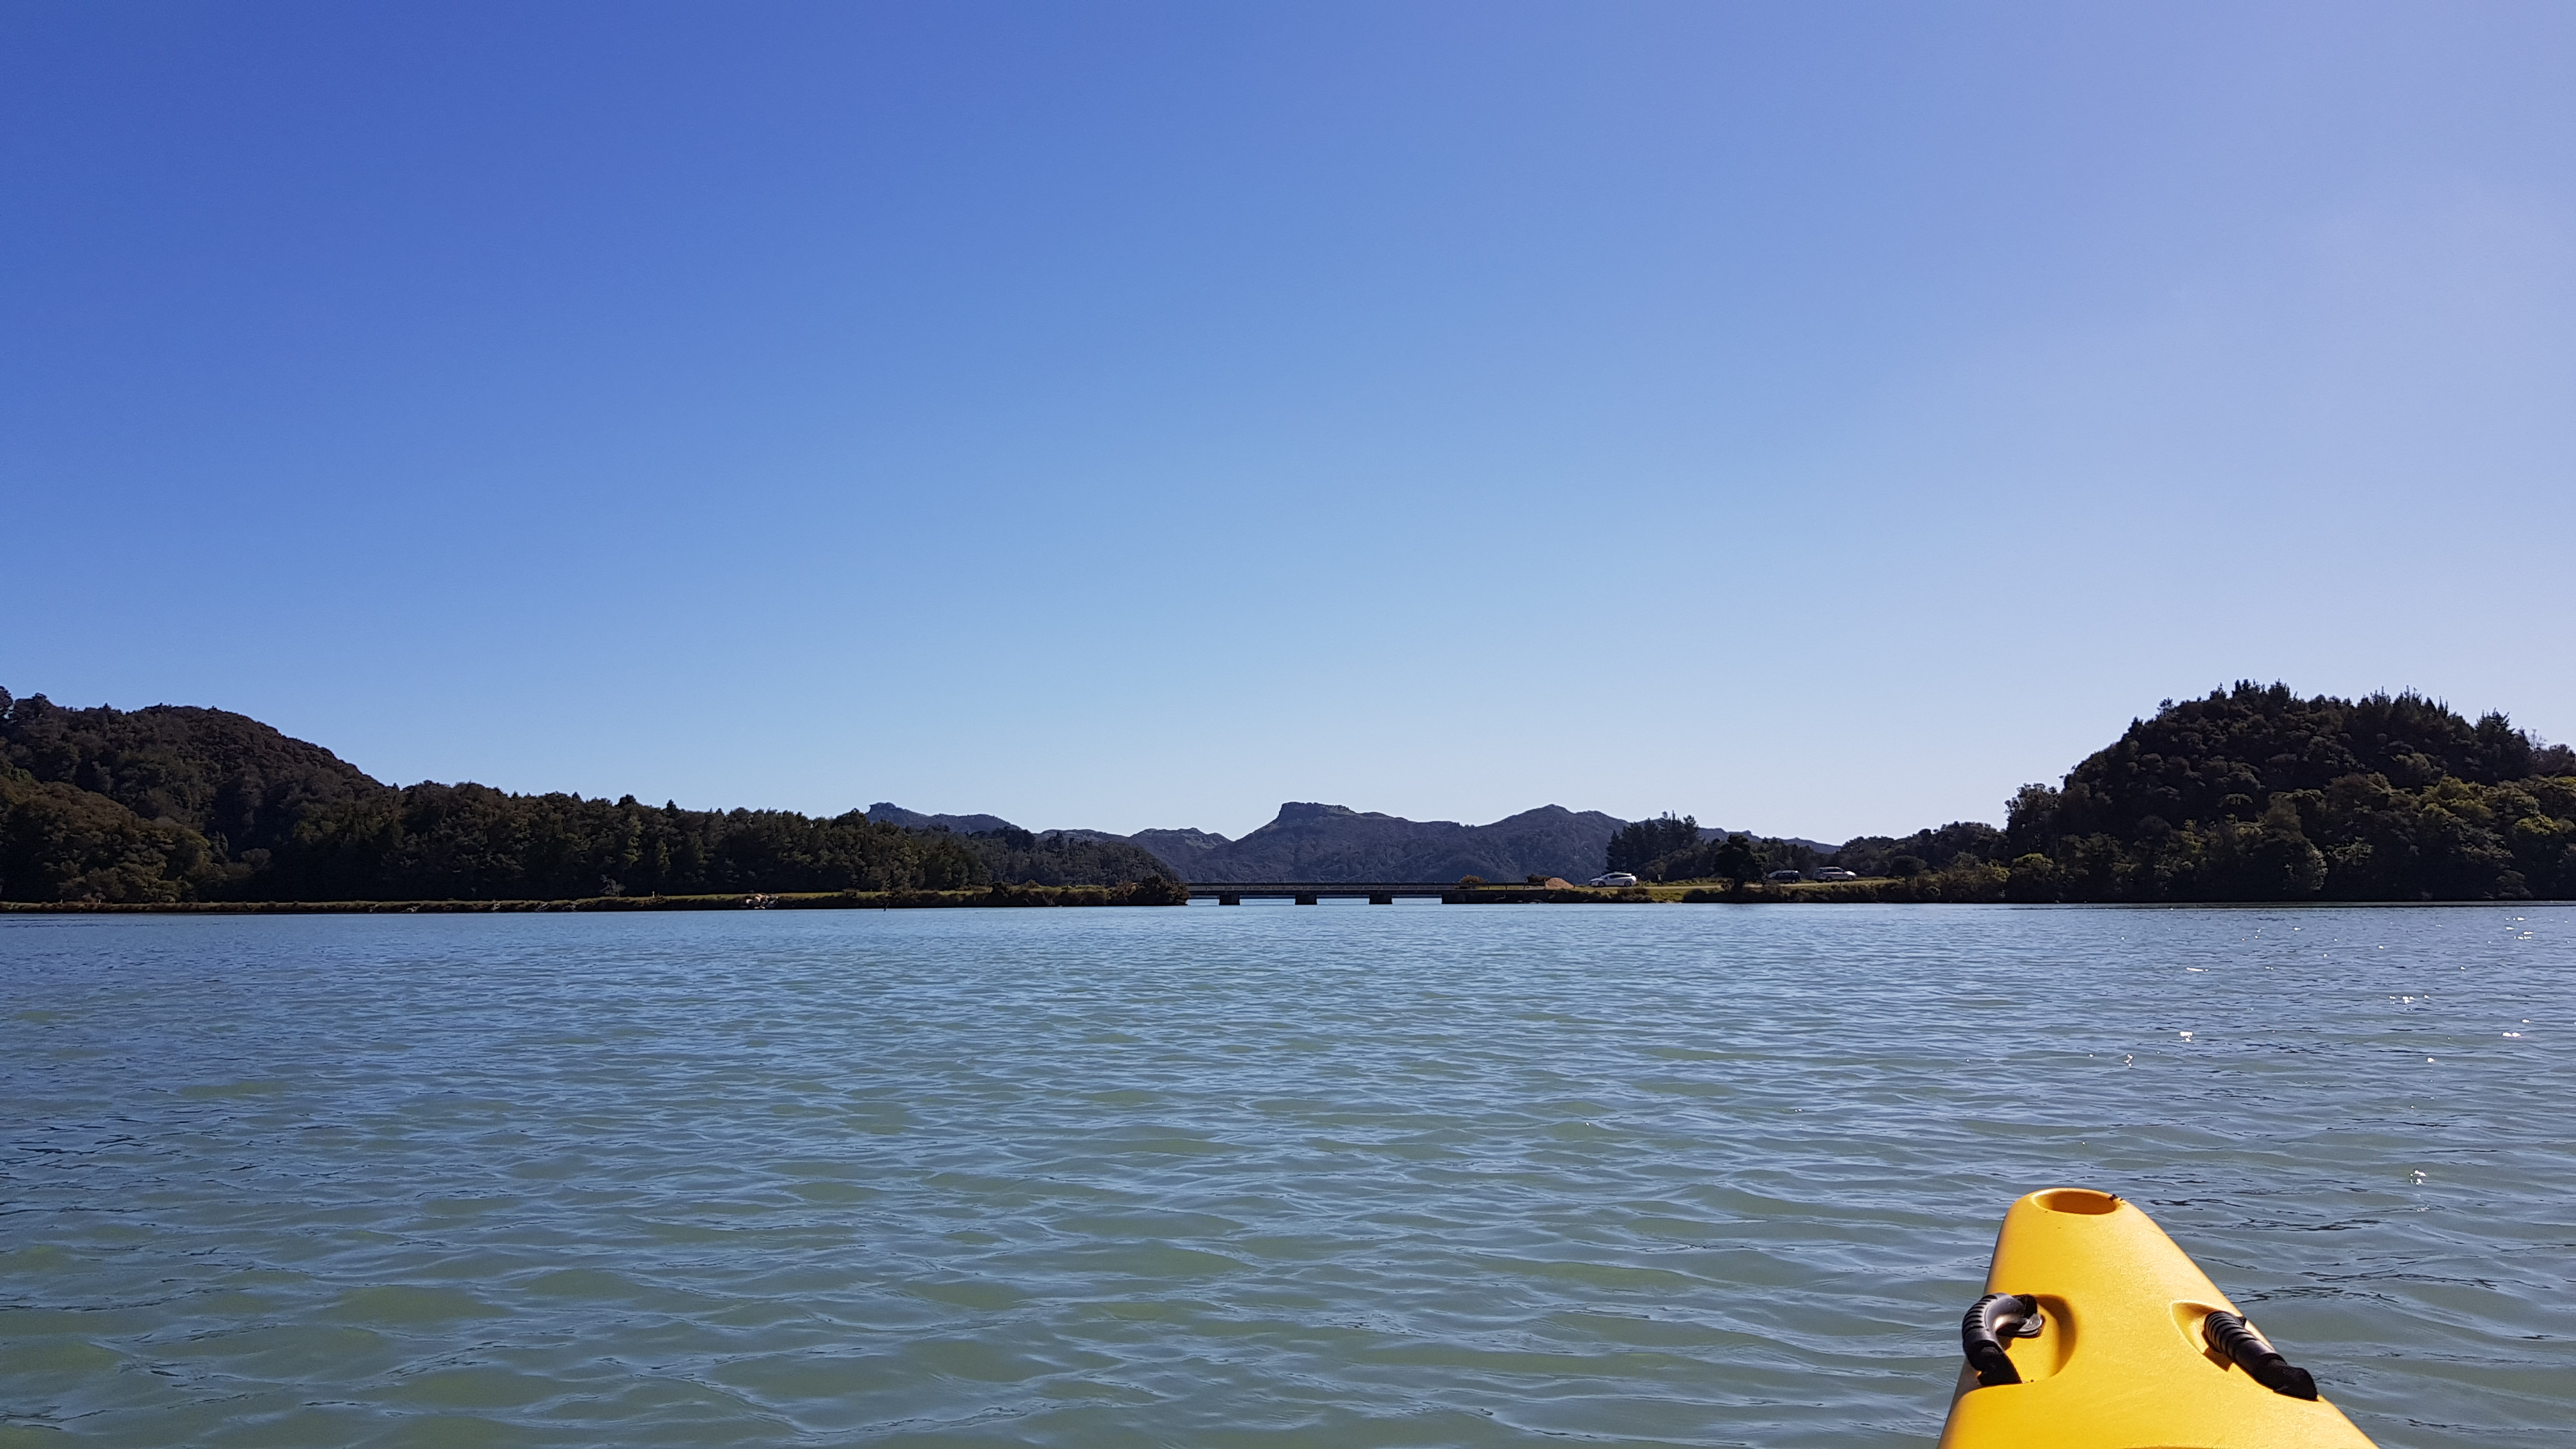 Out of the Wairoa into the Whanganui Inlet